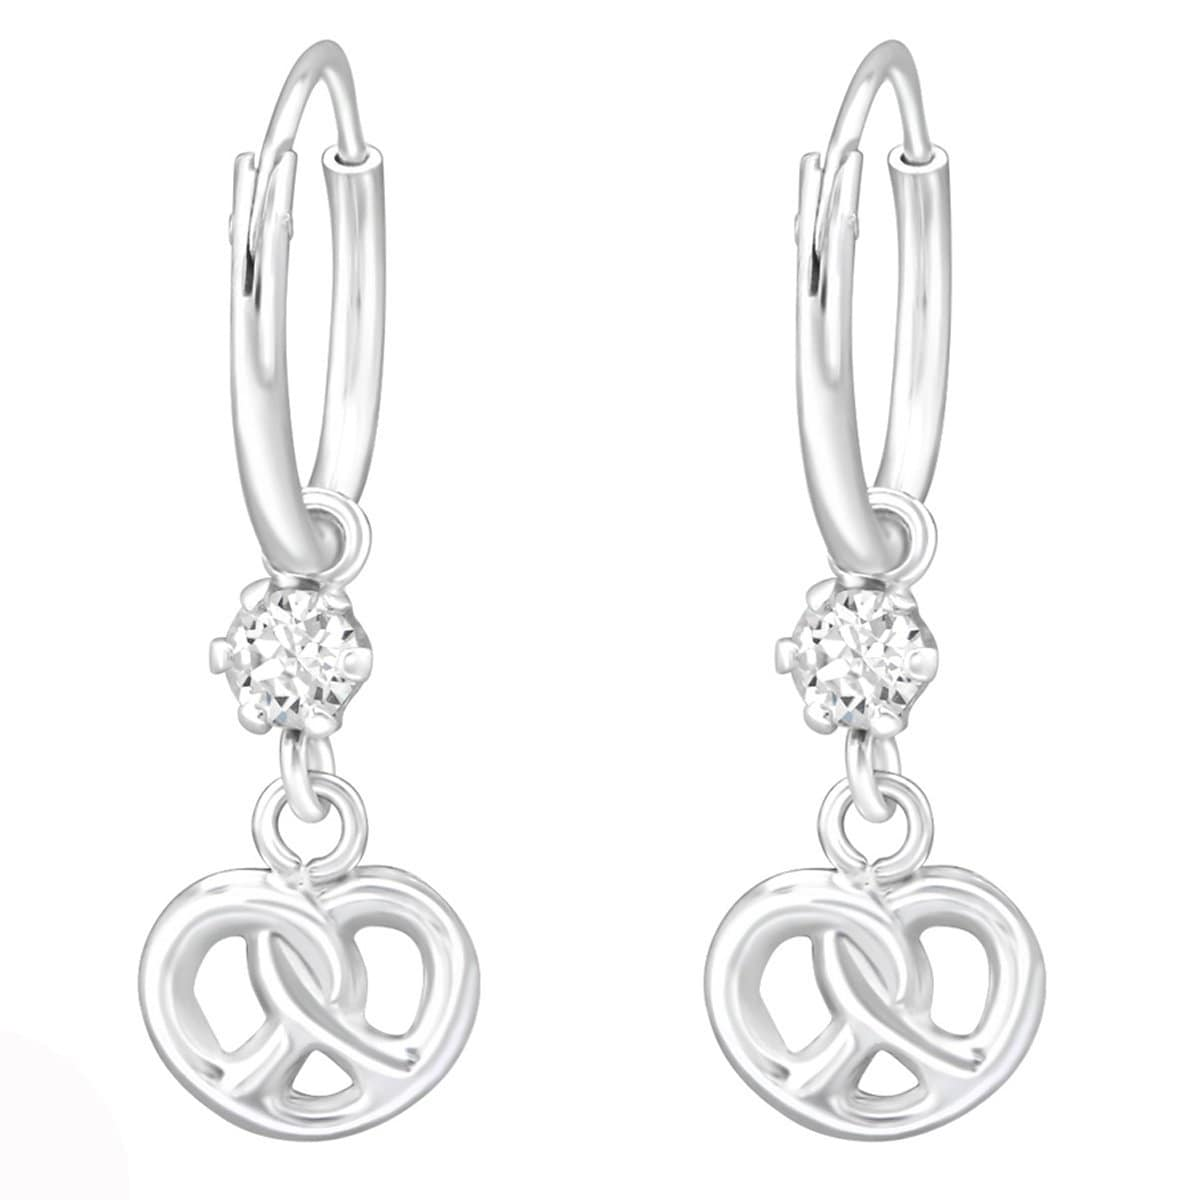 Sterling Silver Infinity Knot hoop earring Made With Swarovski Crystal